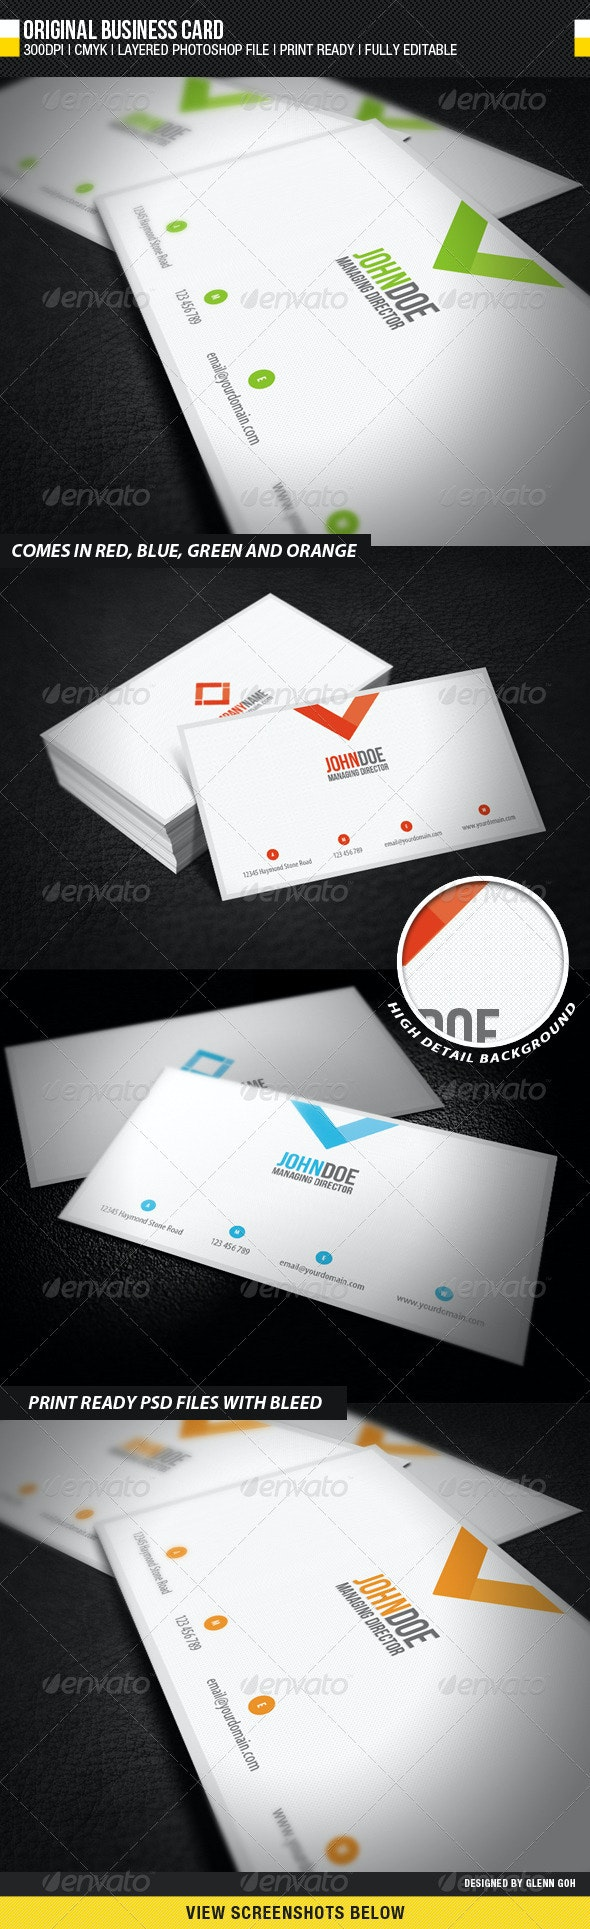 Original Business Card - Corporate Business Cards